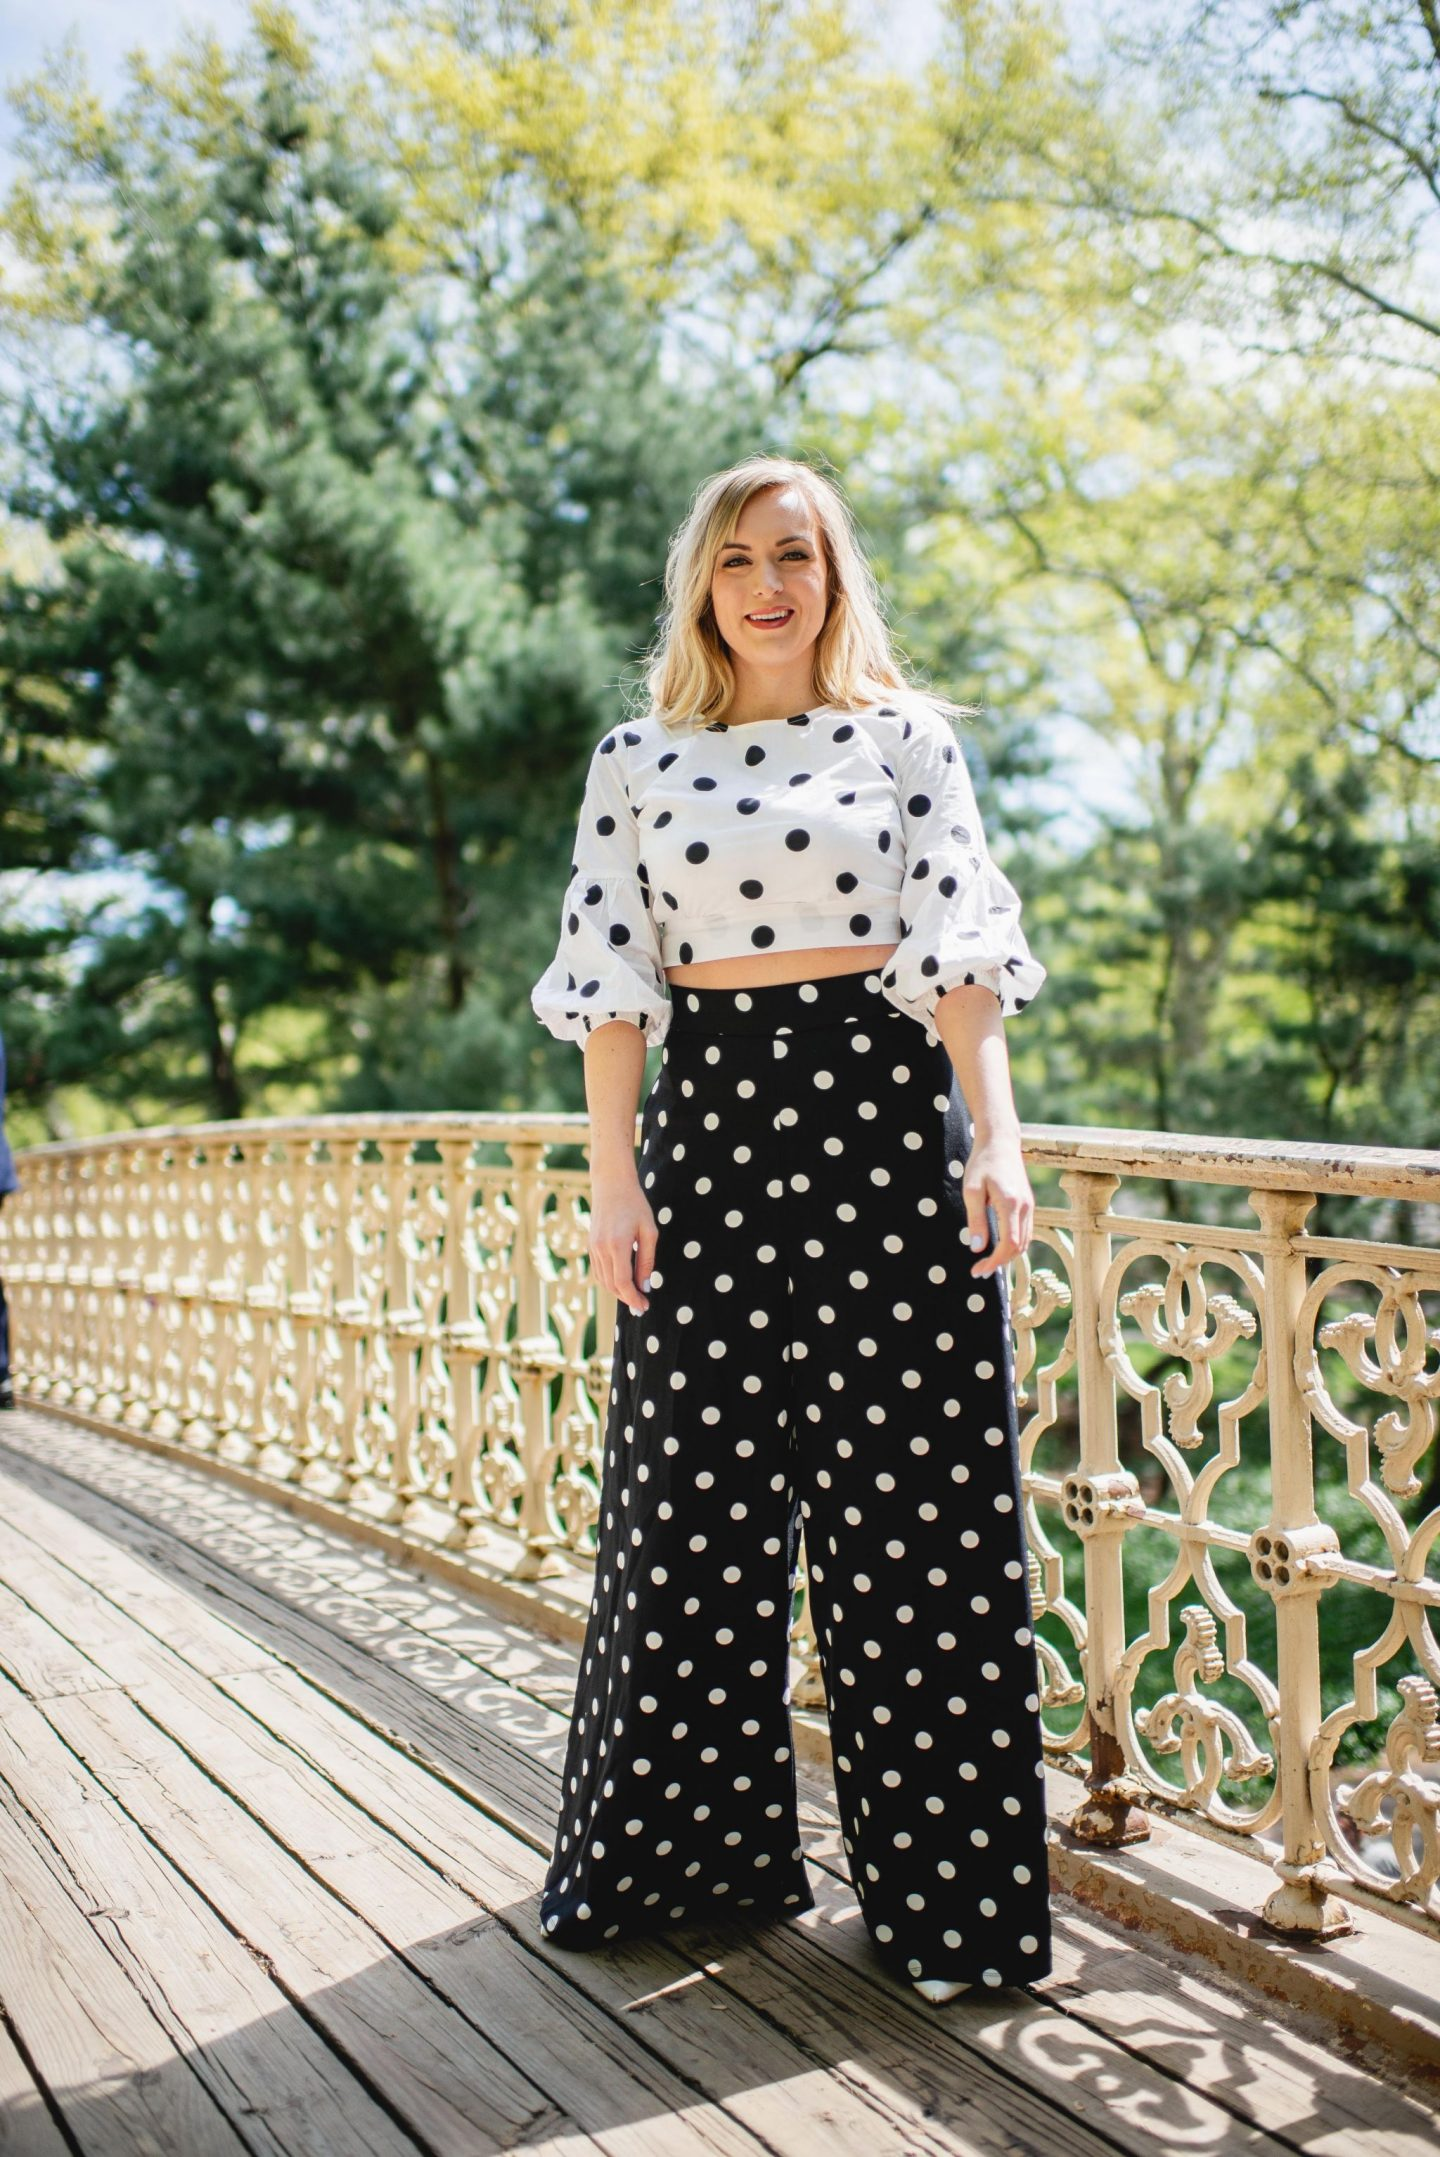 one blonde woman wearing polka dot outfit for post on how to style polka dots for spring/summer 2019